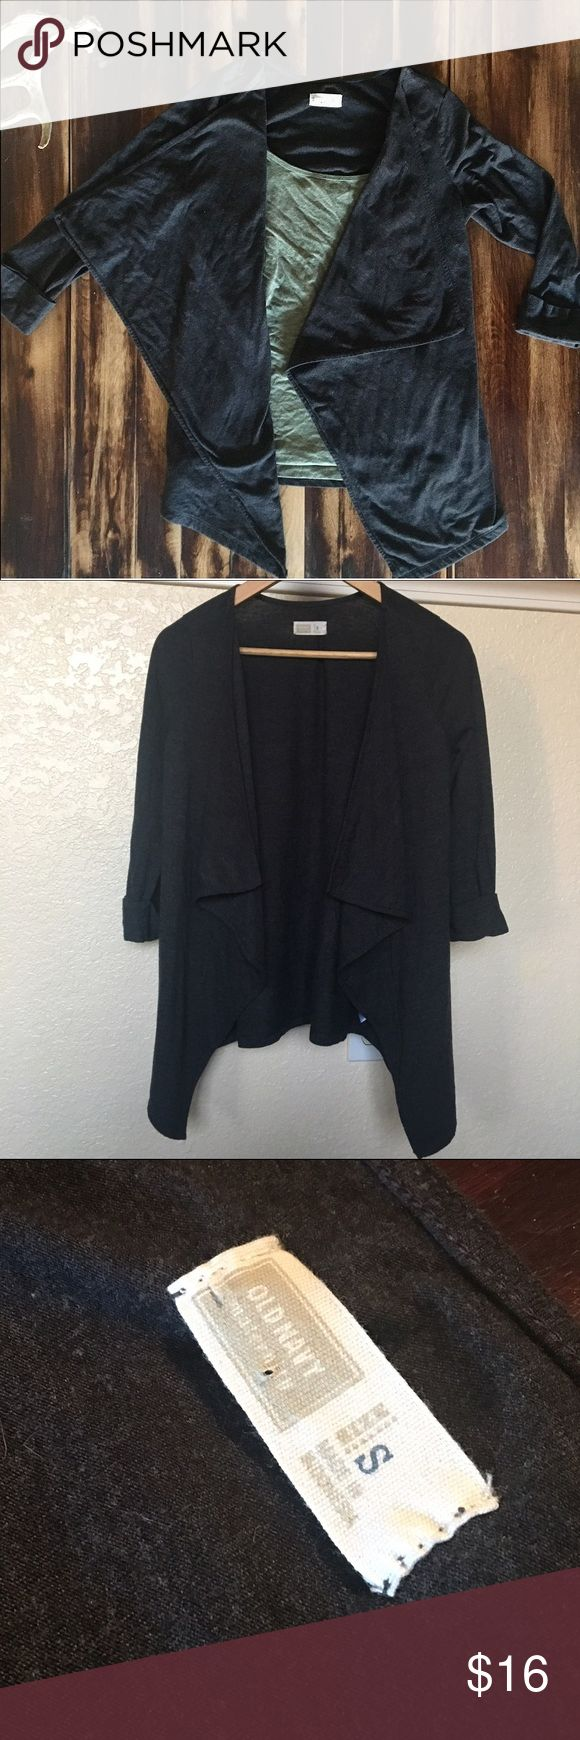 Waterfall Cardigan Draped gray/black cardigan. Cuffed sleeves. Gently worn. Hardly worn actually Old Navy Sweaters Cardigans